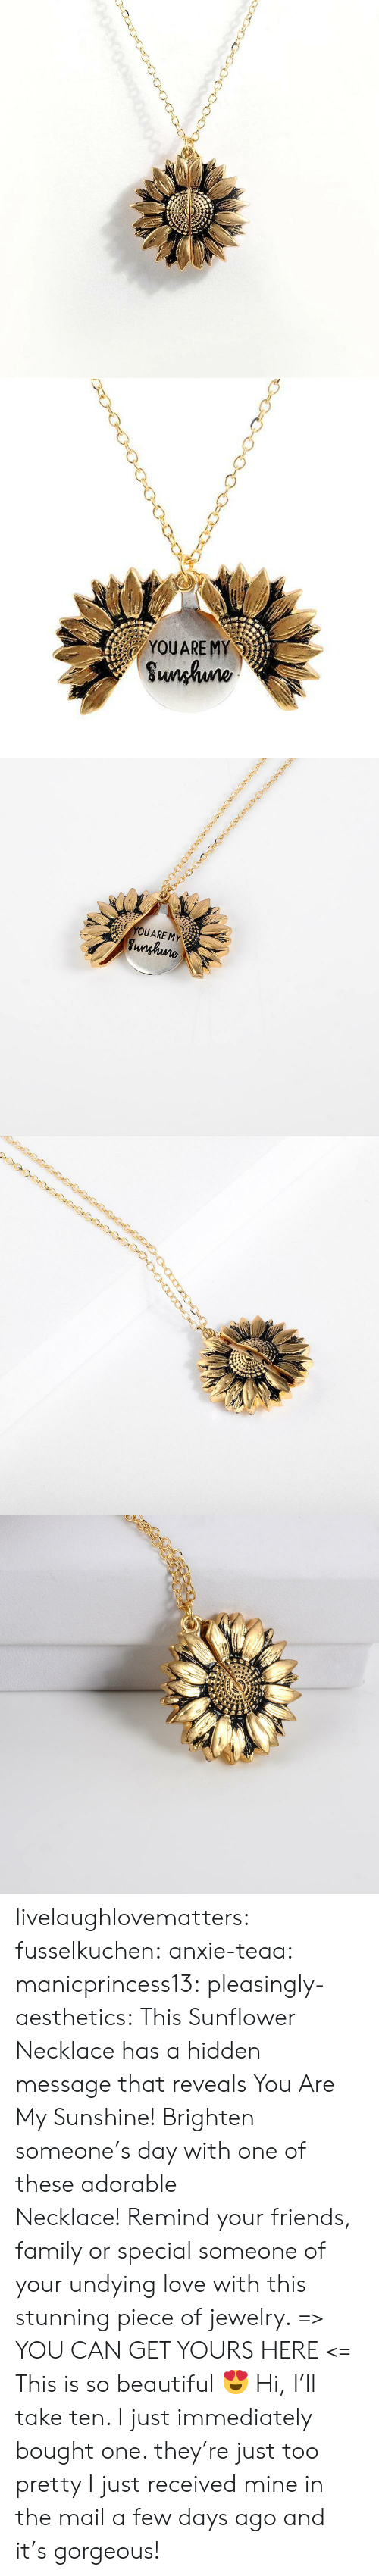 Beautiful, Family, and Friends: YOUARE MY  Sunhuno   YOUARE MY  Sunghune livelaughlovematters:  fusselkuchen: anxie-teaa:   manicprincess13:   pleasingly-aesthetics:  This Sunflower Necklace has a hidden message that reveals You Are My Sunshine! Brighten someone's day with one of these adorable Necklace! Remind your friends, family or special someone of your undying love with this stunning piece of jewelry. => YOU CAN GET YOURS HERE <=   This is so beautiful 😍    Hi, I'll take ten.    I just immediately bought one. they're just too pretty   I just received mine in the mail a few days ago and it's gorgeous!